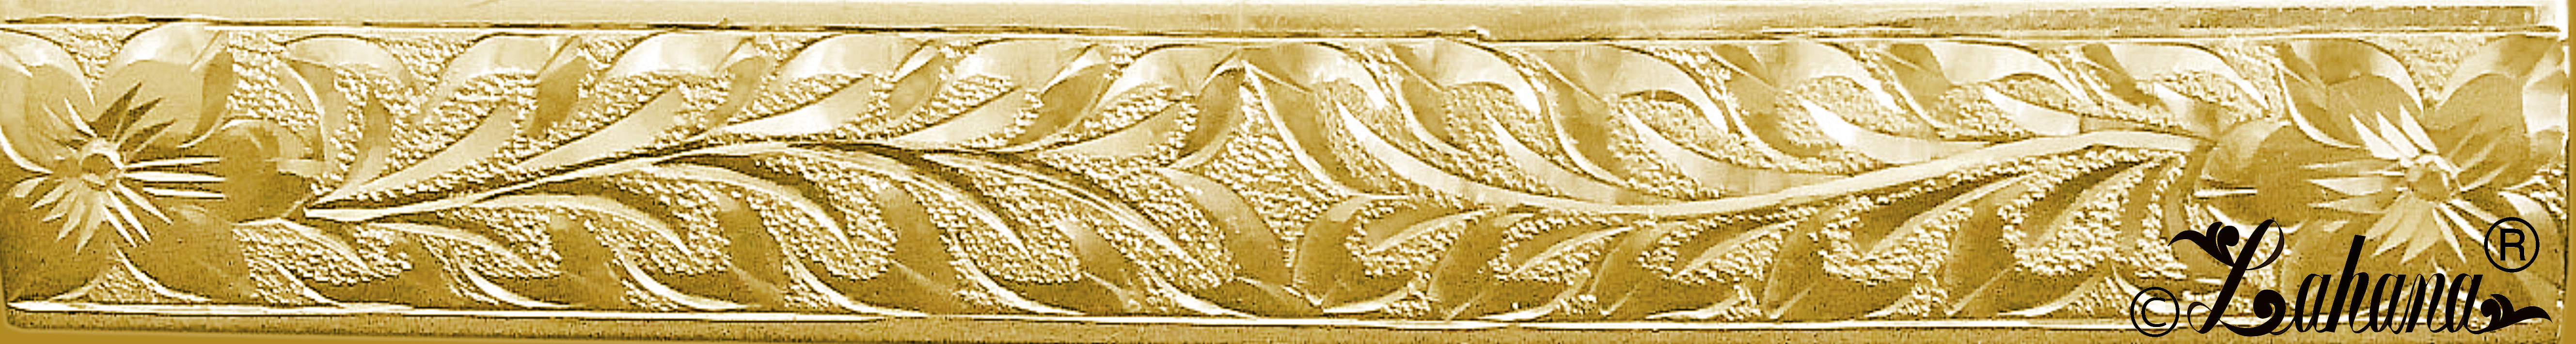 14k-sample-logo-ad-a.jpg